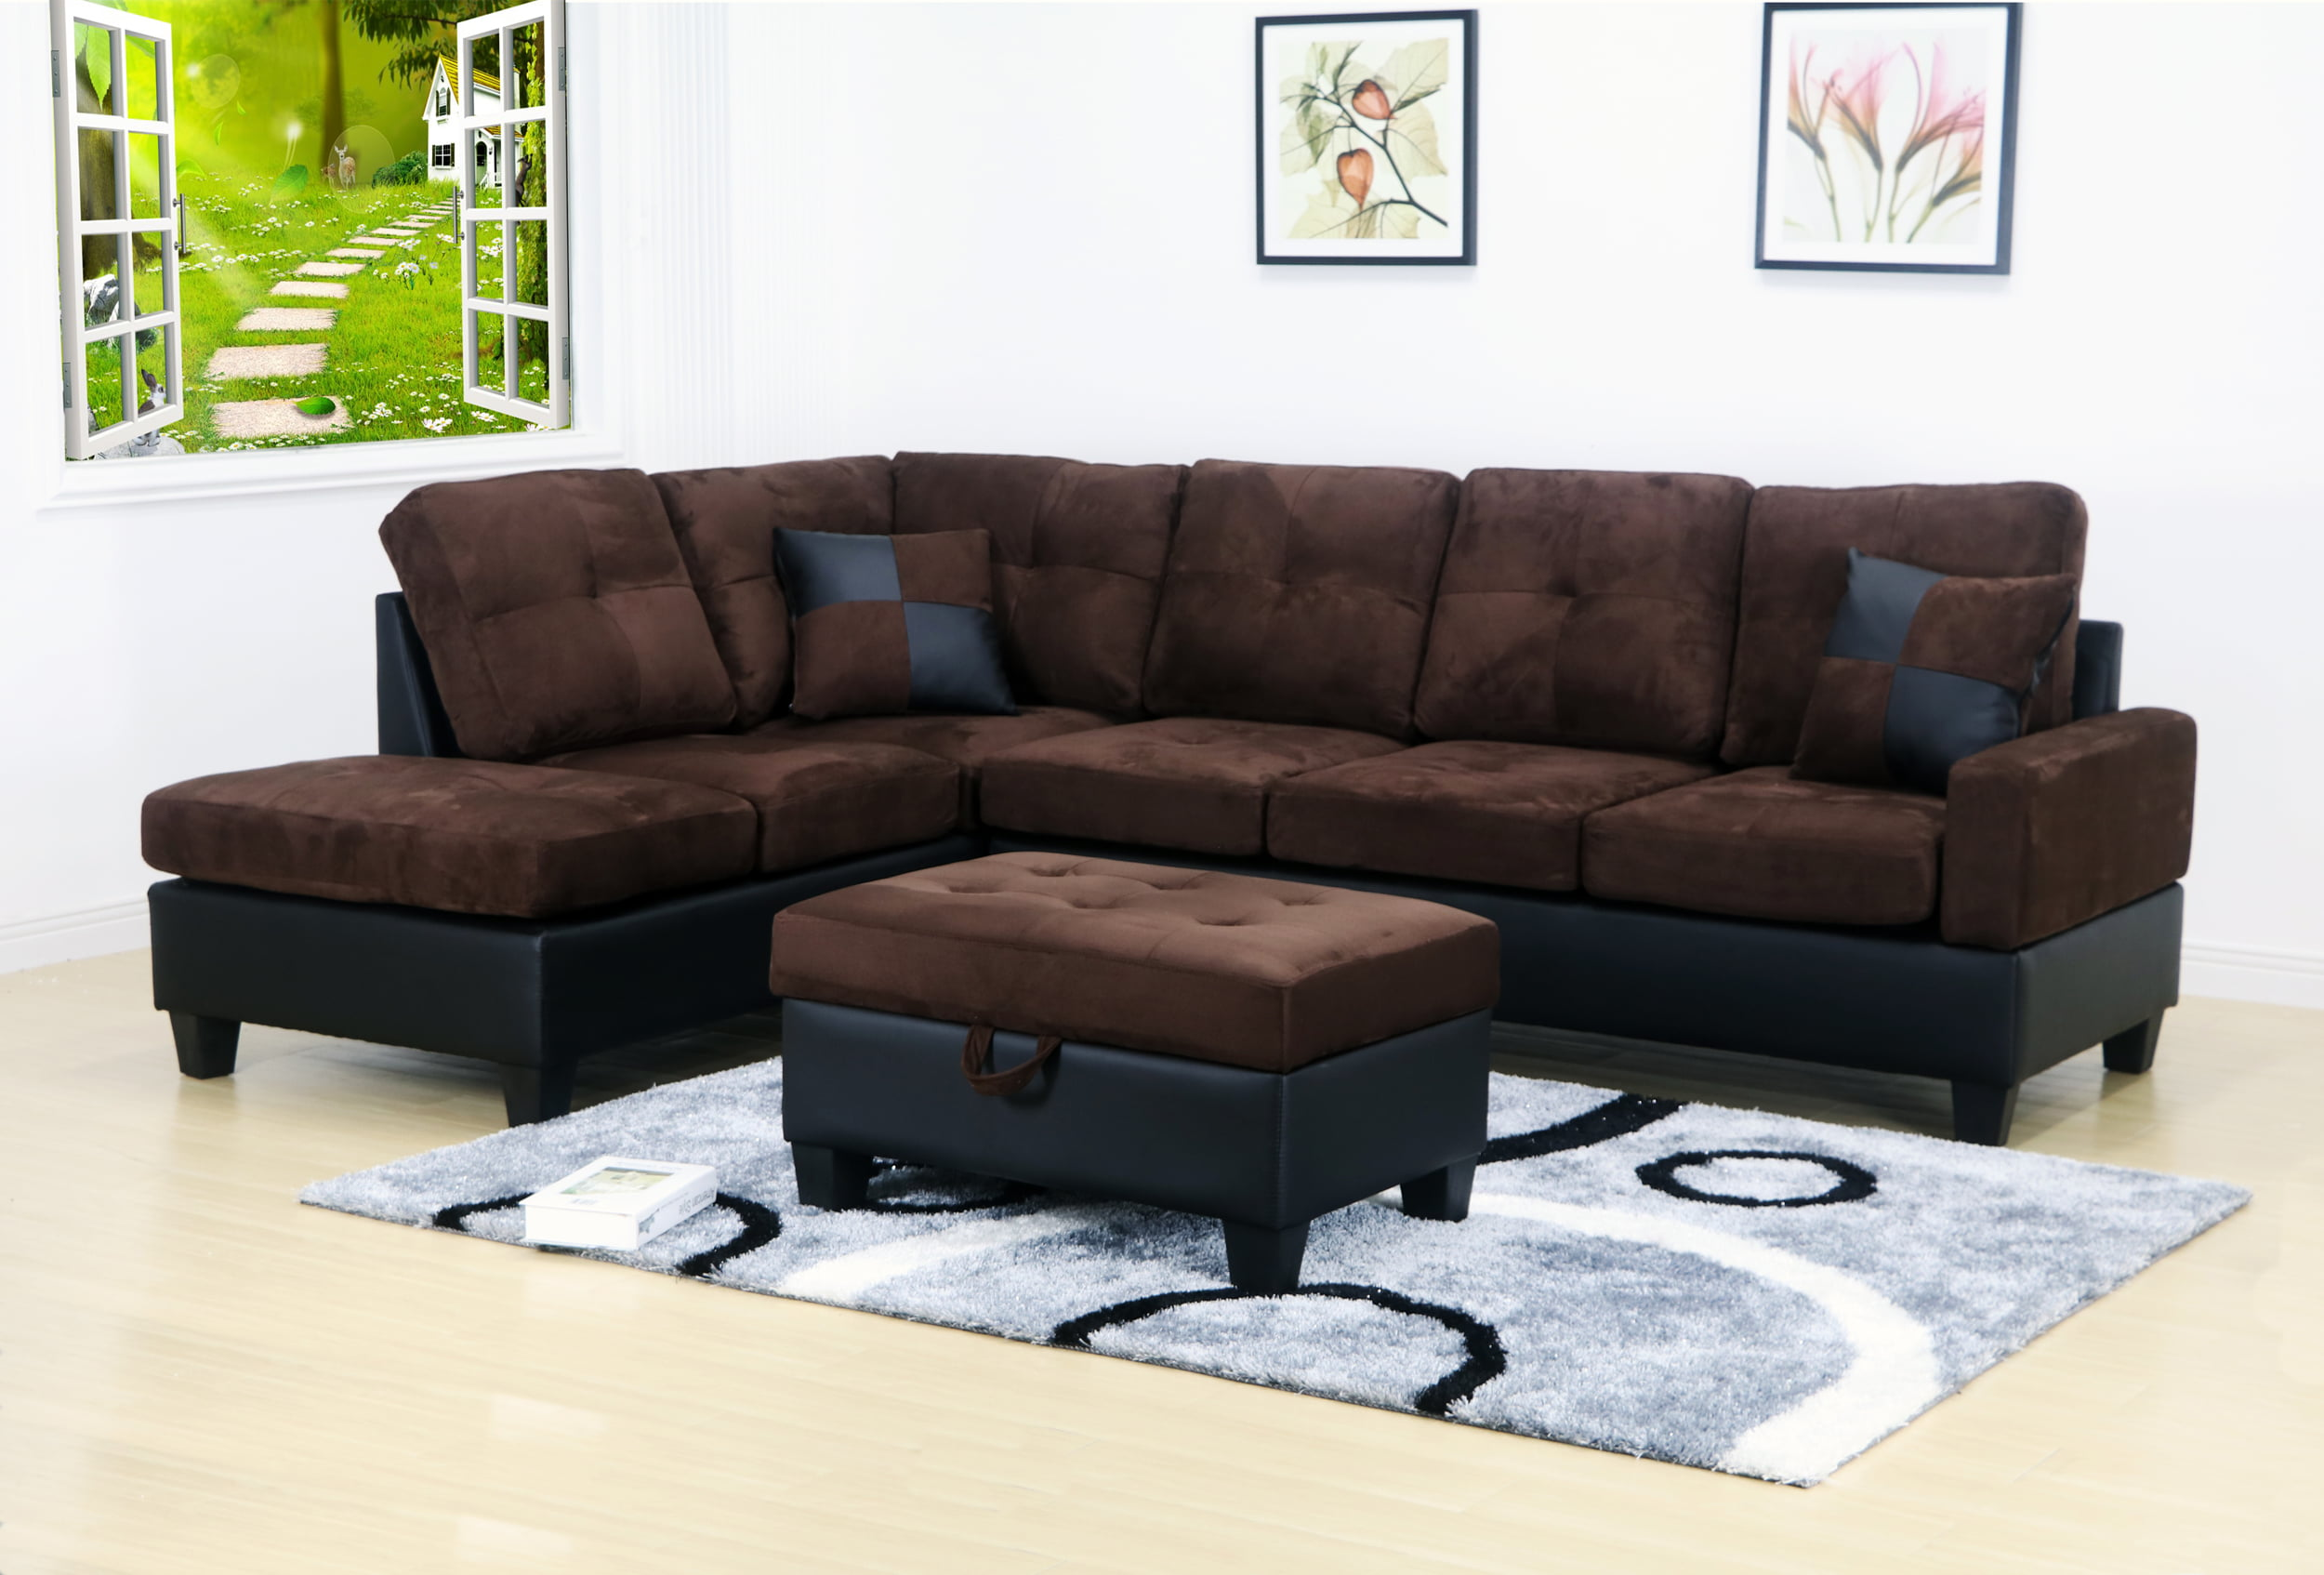 LexMod Waverunner Modular Sectional Sofa in Light Gray Walmart